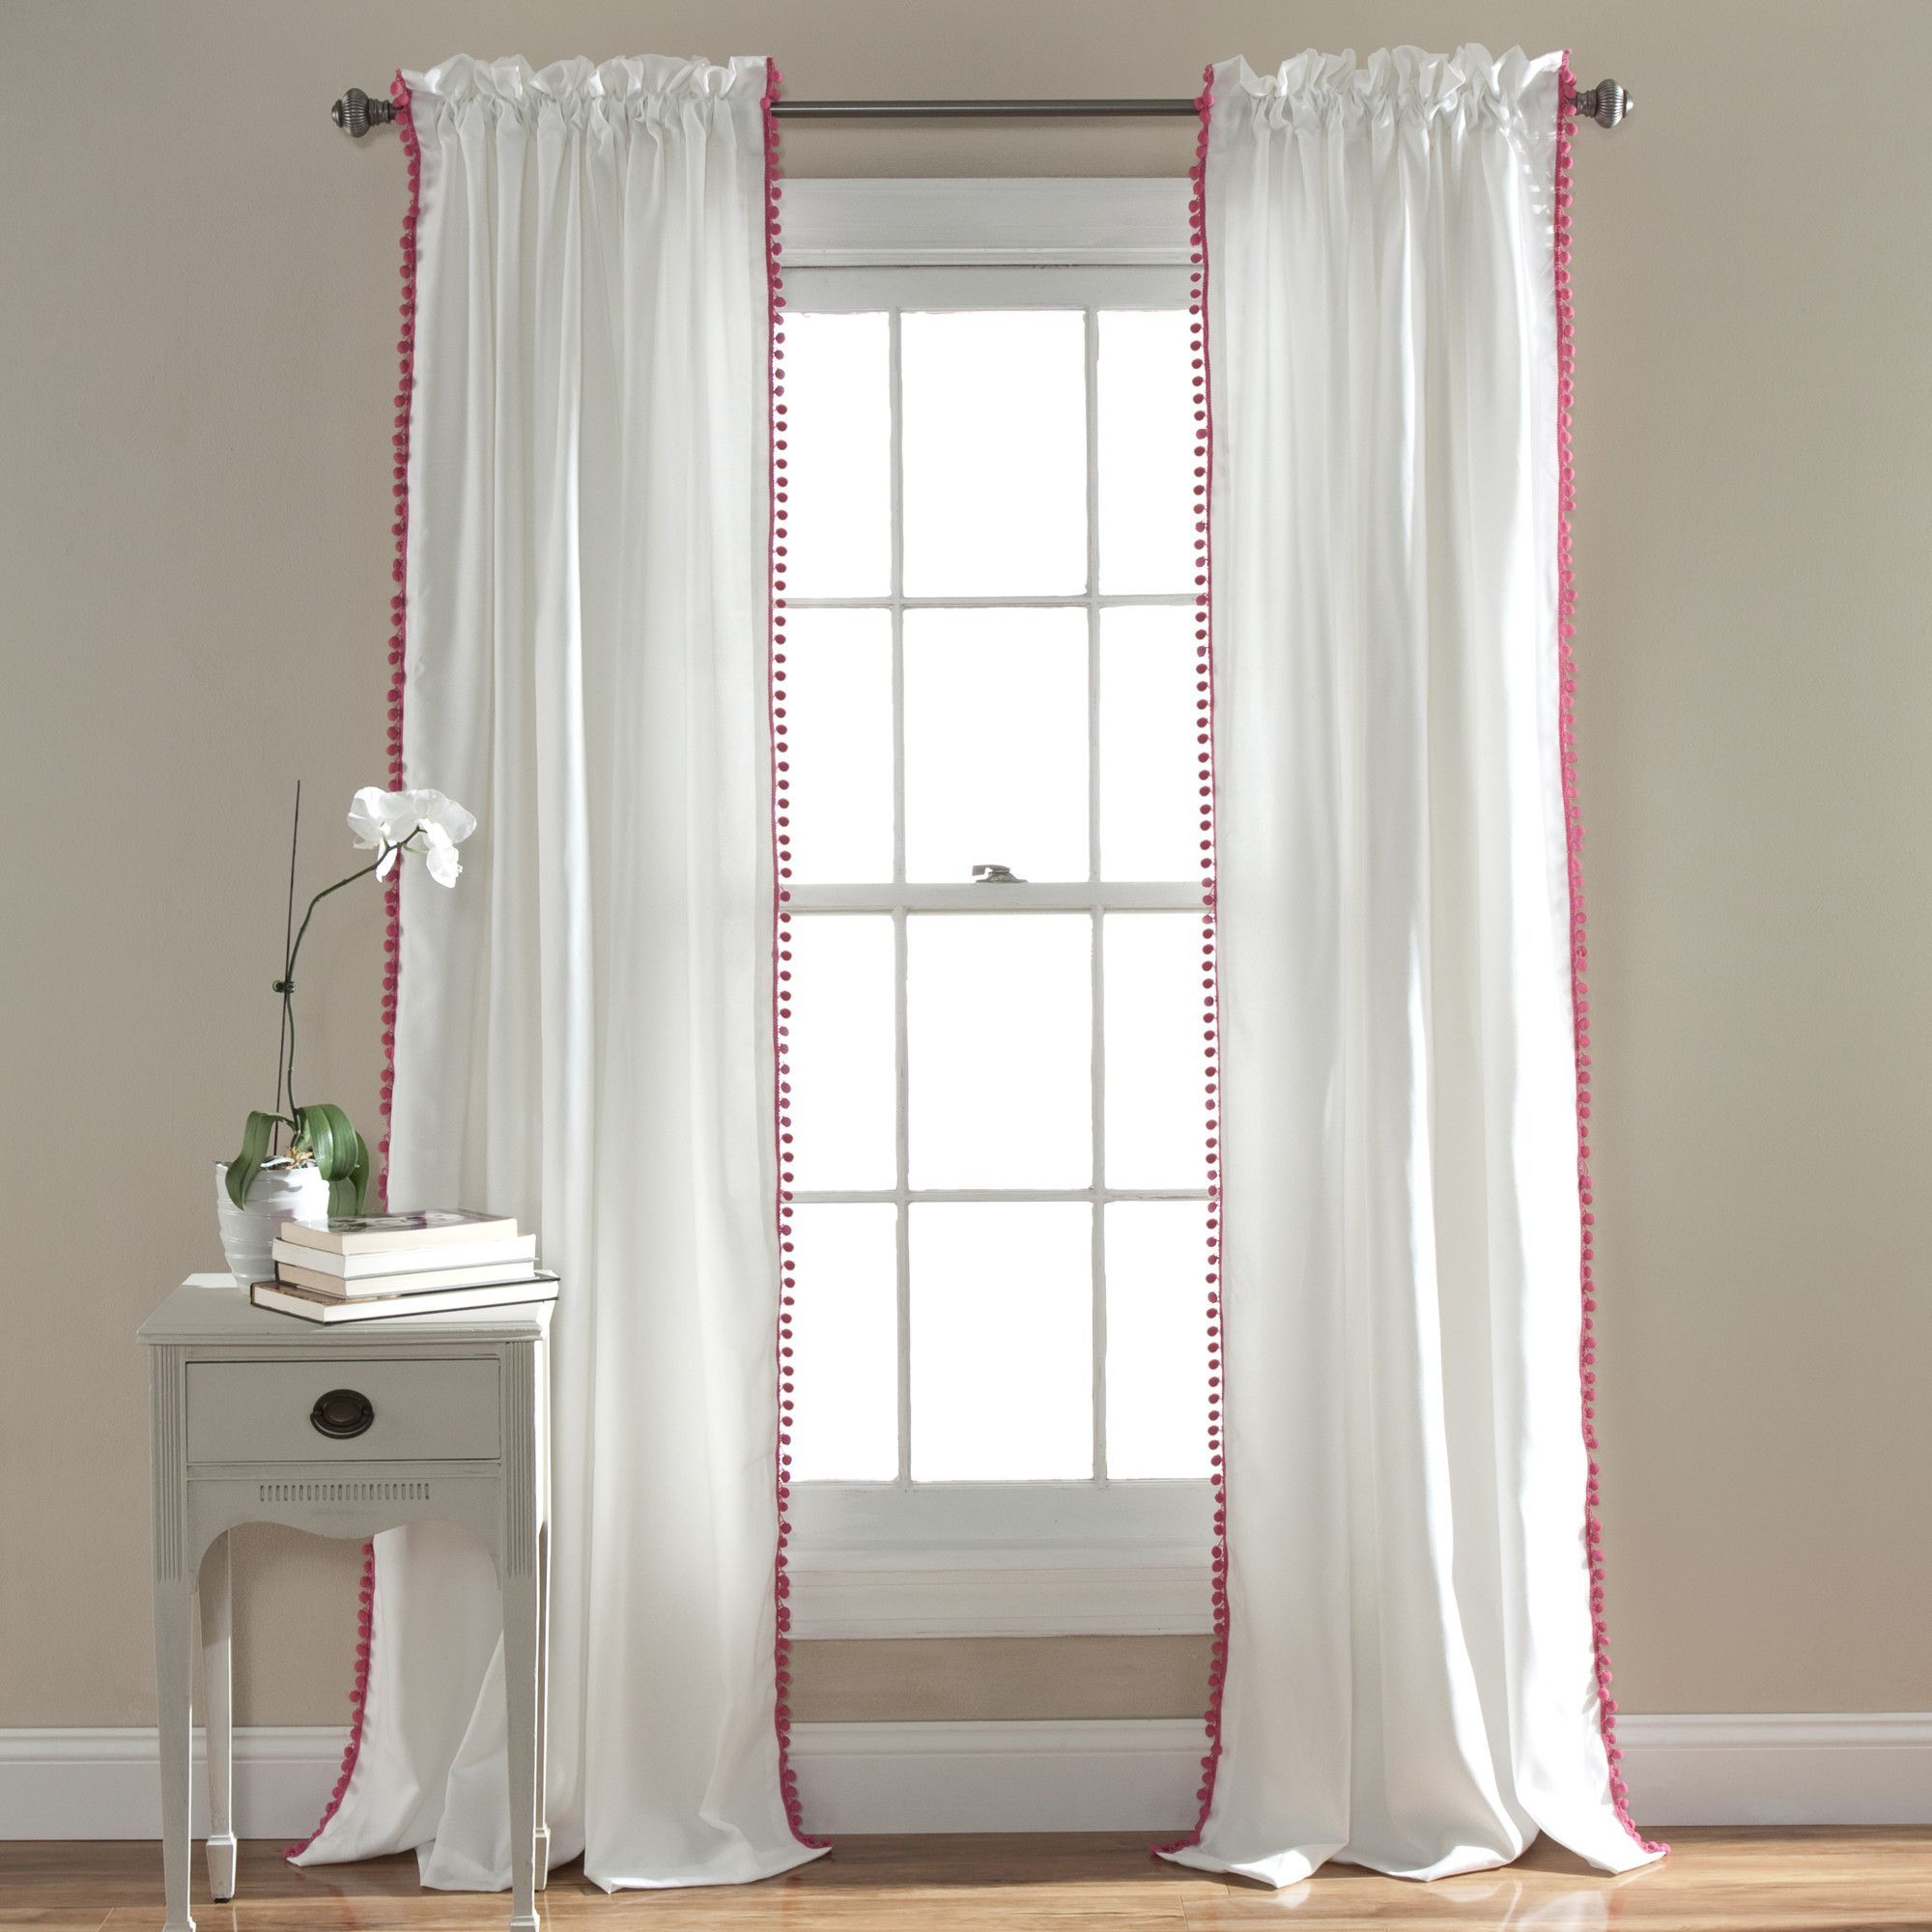 wikimedia file wiki commons window curtain single